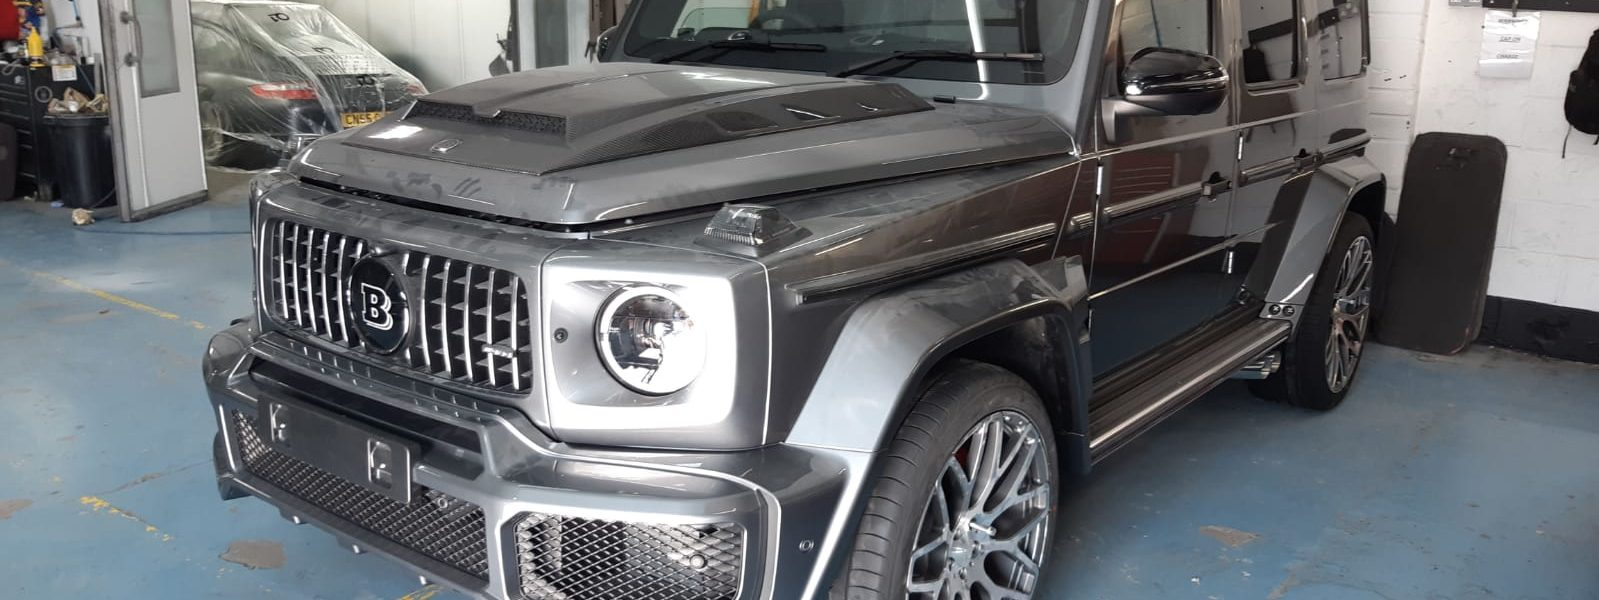 Brabus Widestar – The G63's final form